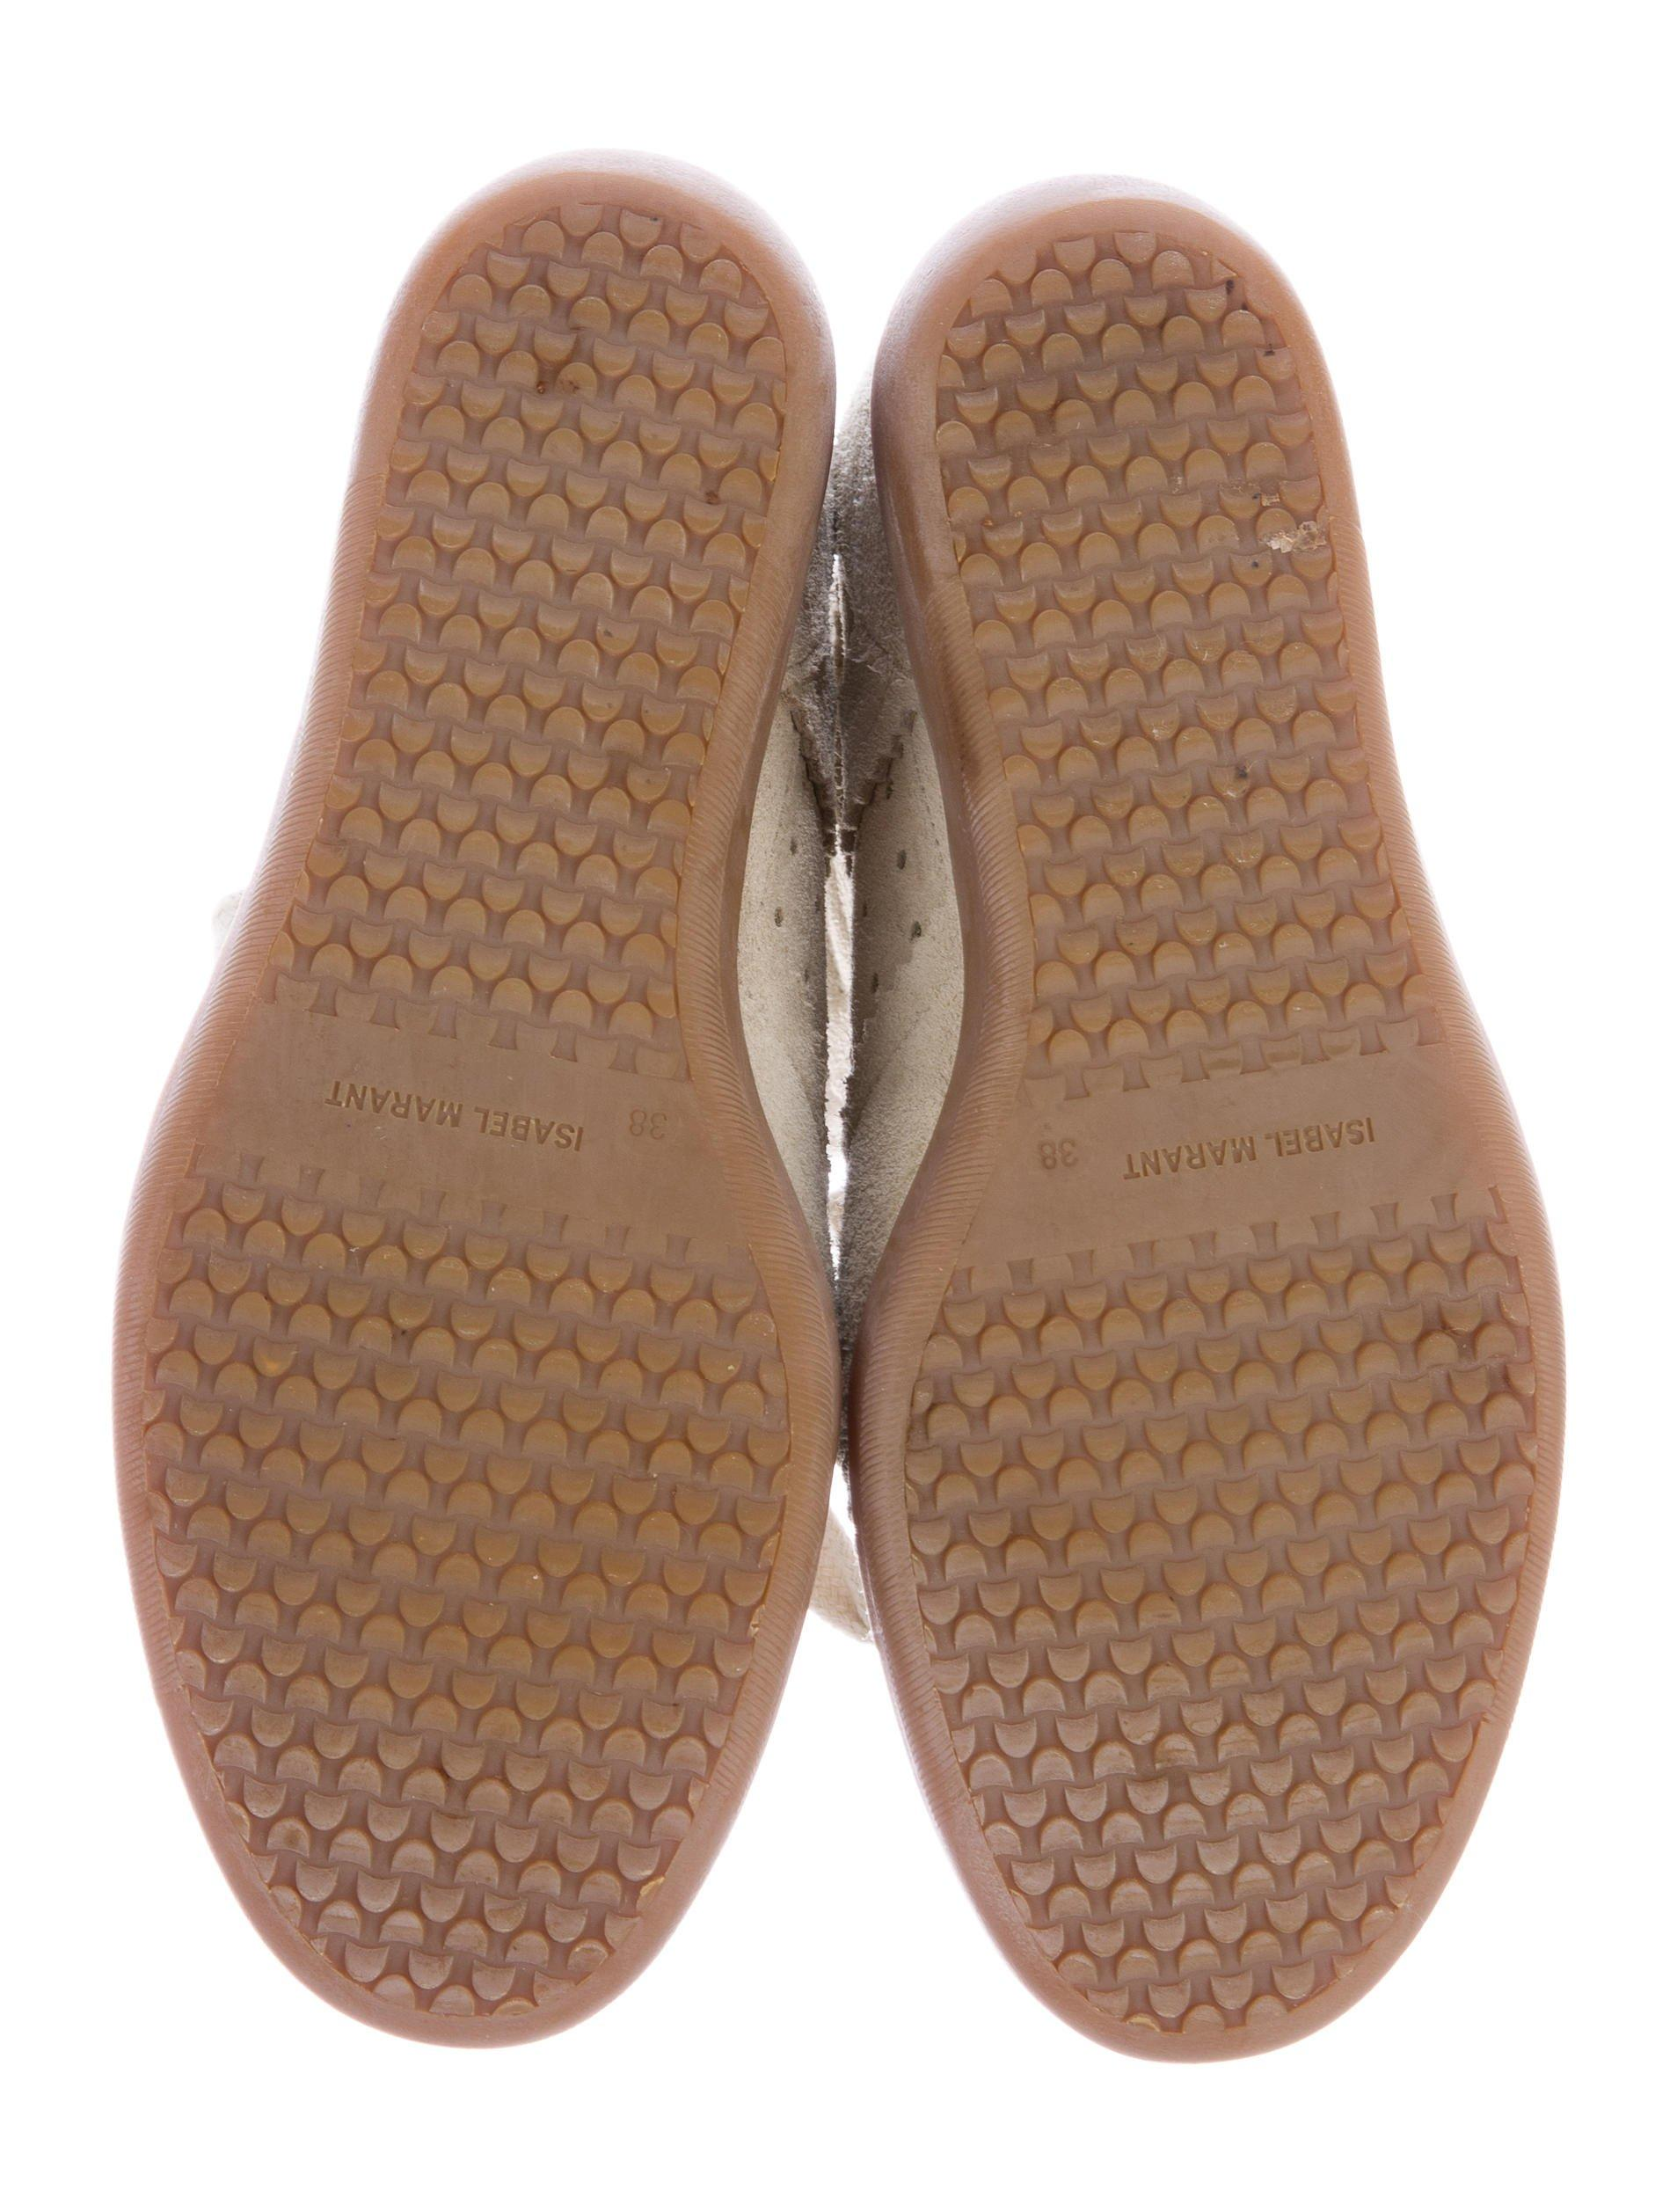 Mango Women Authentic Suede Leather Shoes